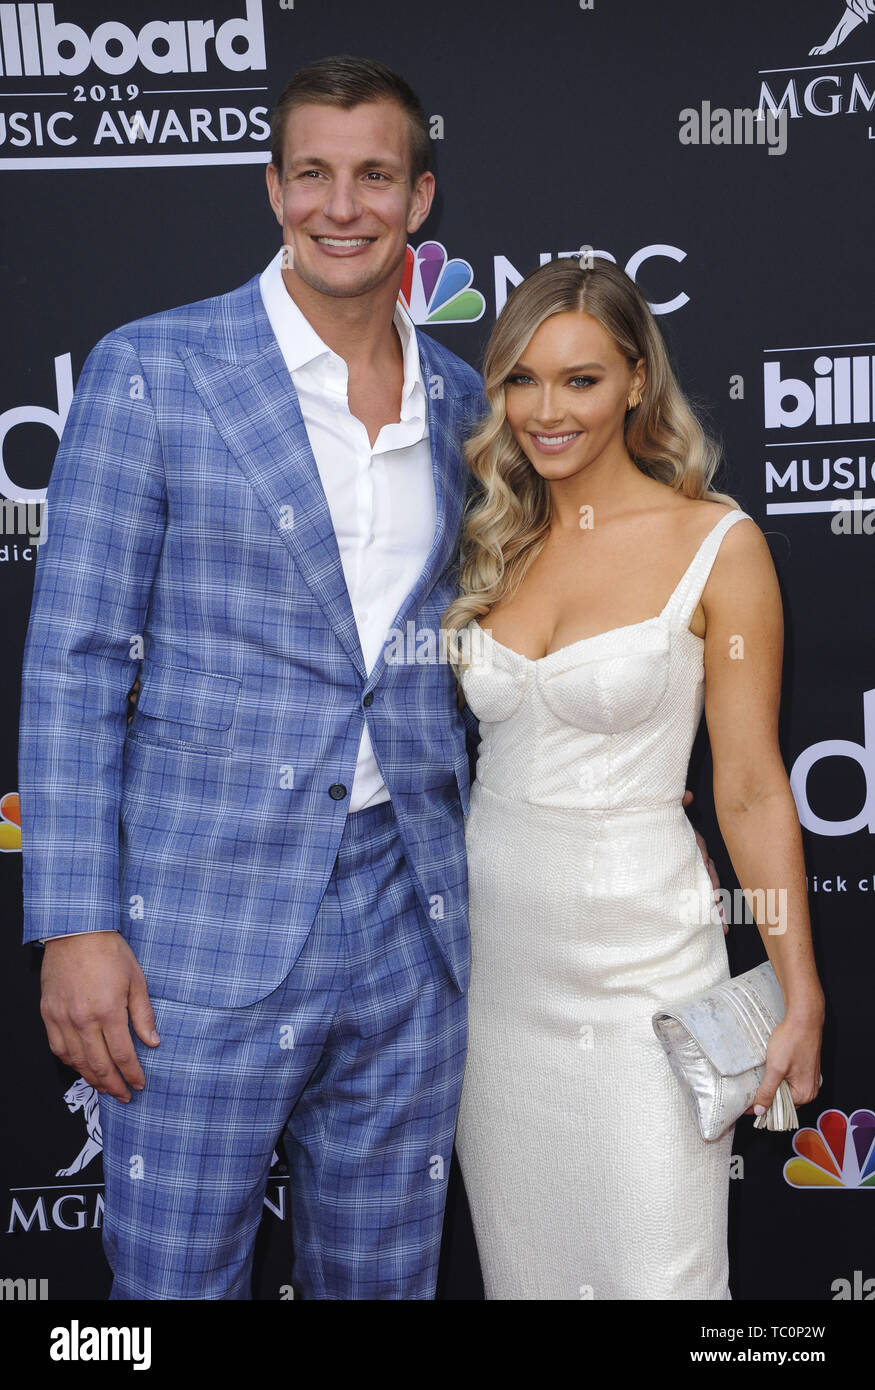 The 2019 Billboard Music Awards Arrivals  Featuring: Rob Grokowski, Camille Kostek Where: Los Angeles, California, United States When: 02 May 2019 Credit: Apega/WENN.com - Stock Image